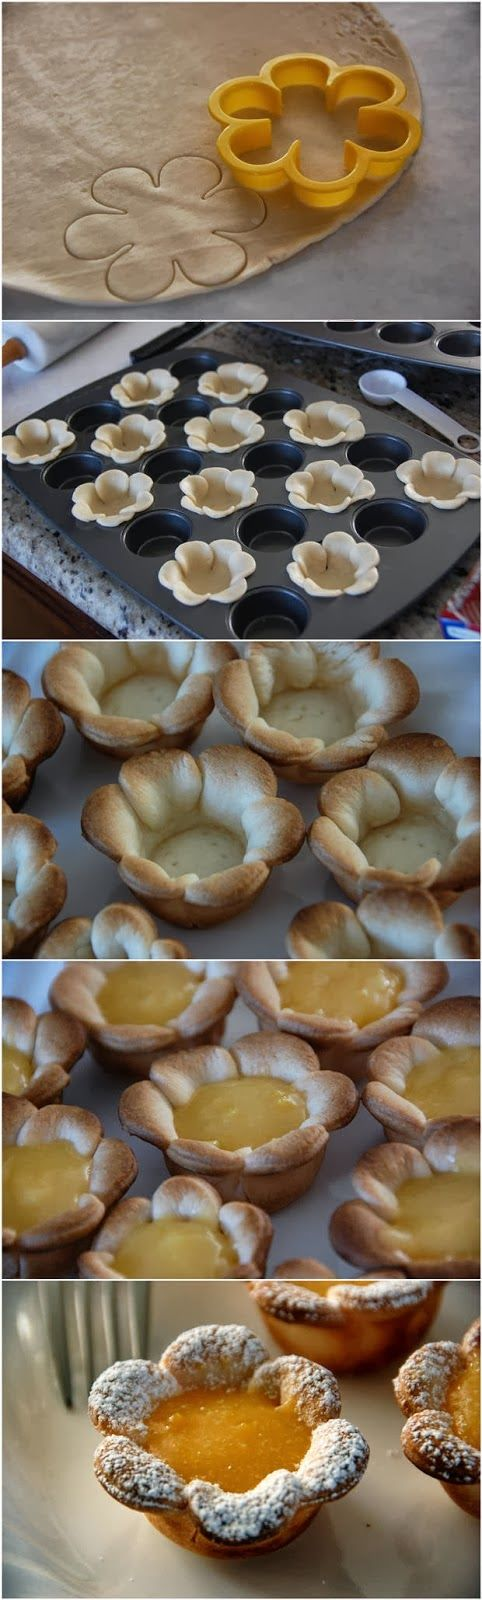 These are so cute! Would fill them with either mini desserts or even as canape quiches - beautiful